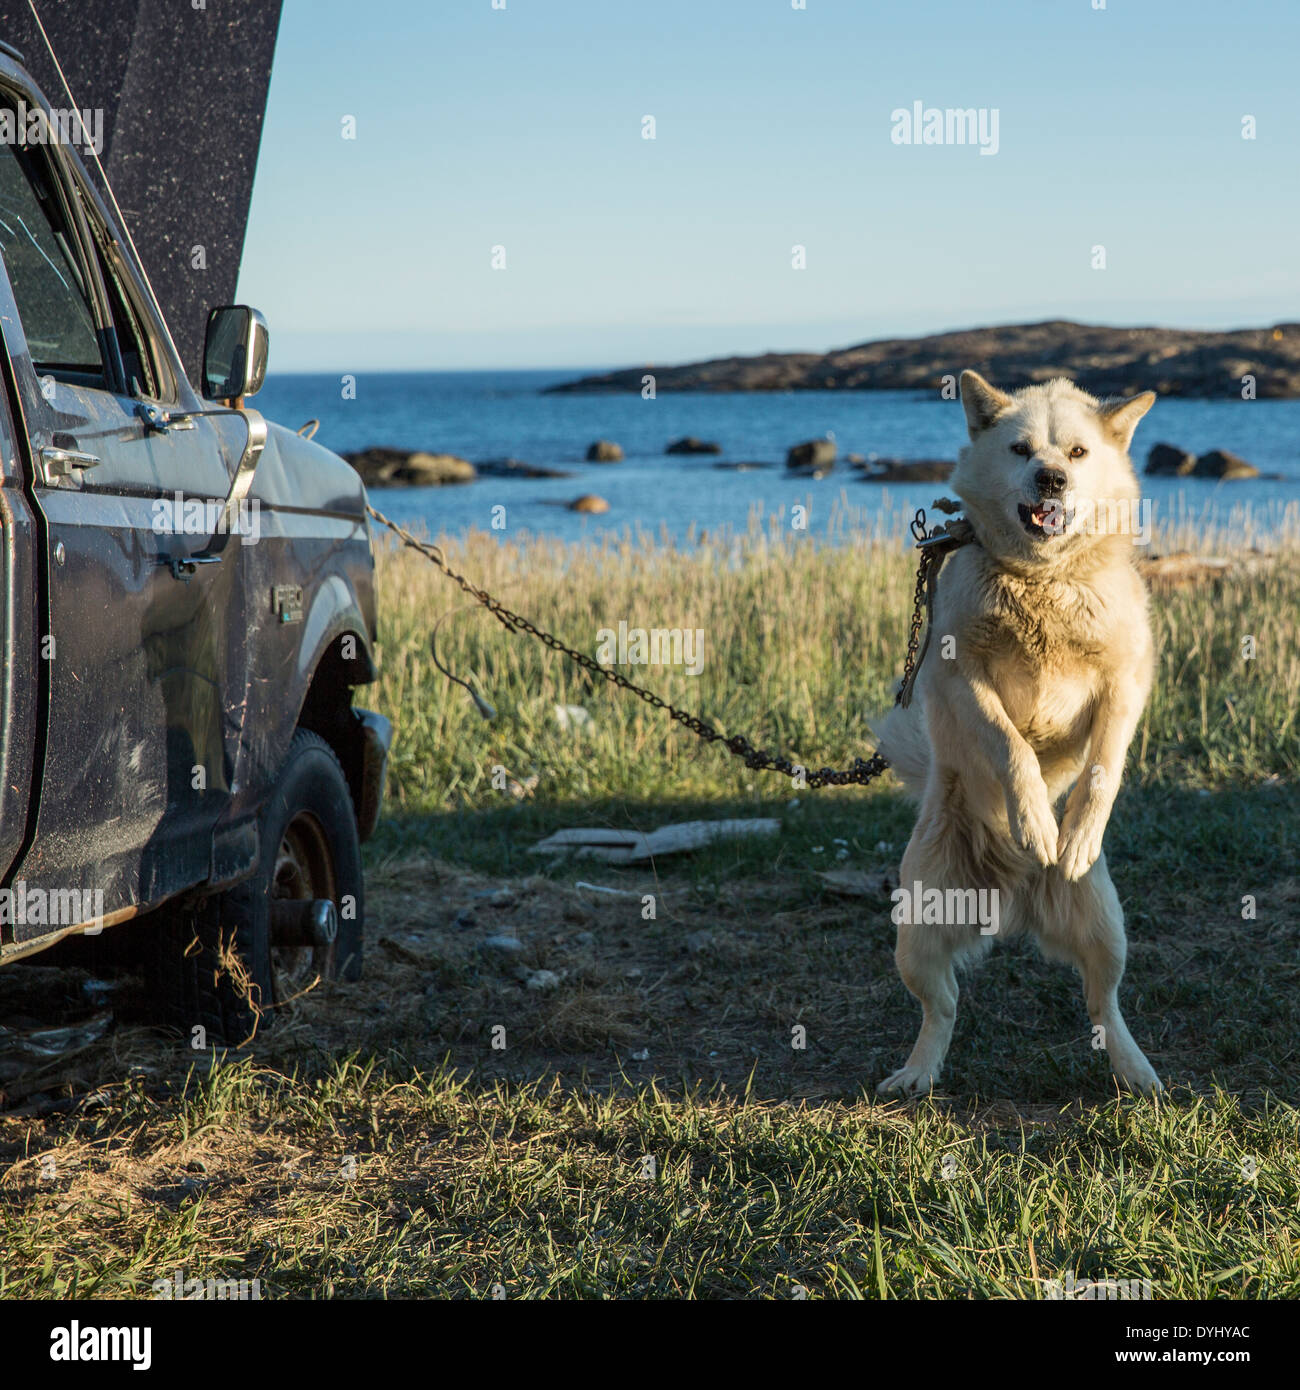 Canada Nunavut Territory Whale Cove Sled dog barks while chained to battered pickup truck in Inuit hunting village along Hudson - Stock Image